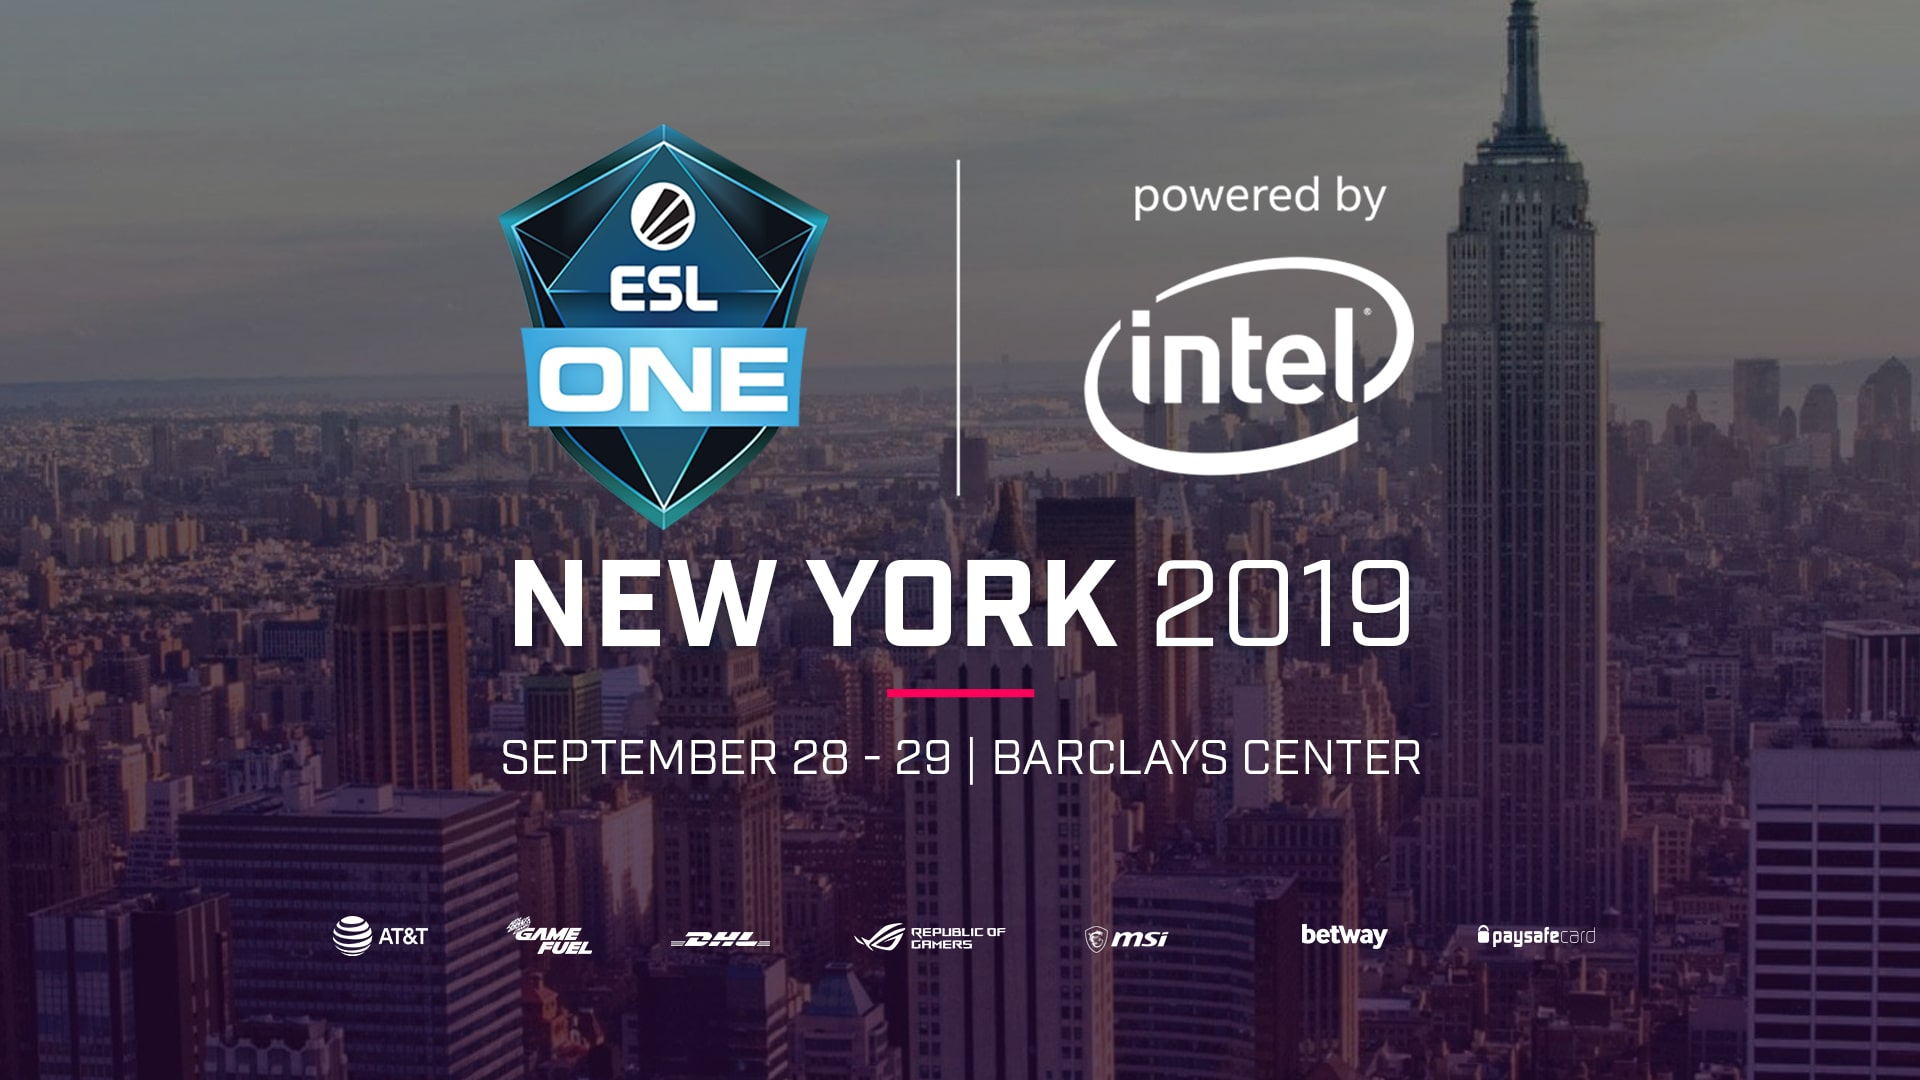 ESL One New York 2019 Tournament